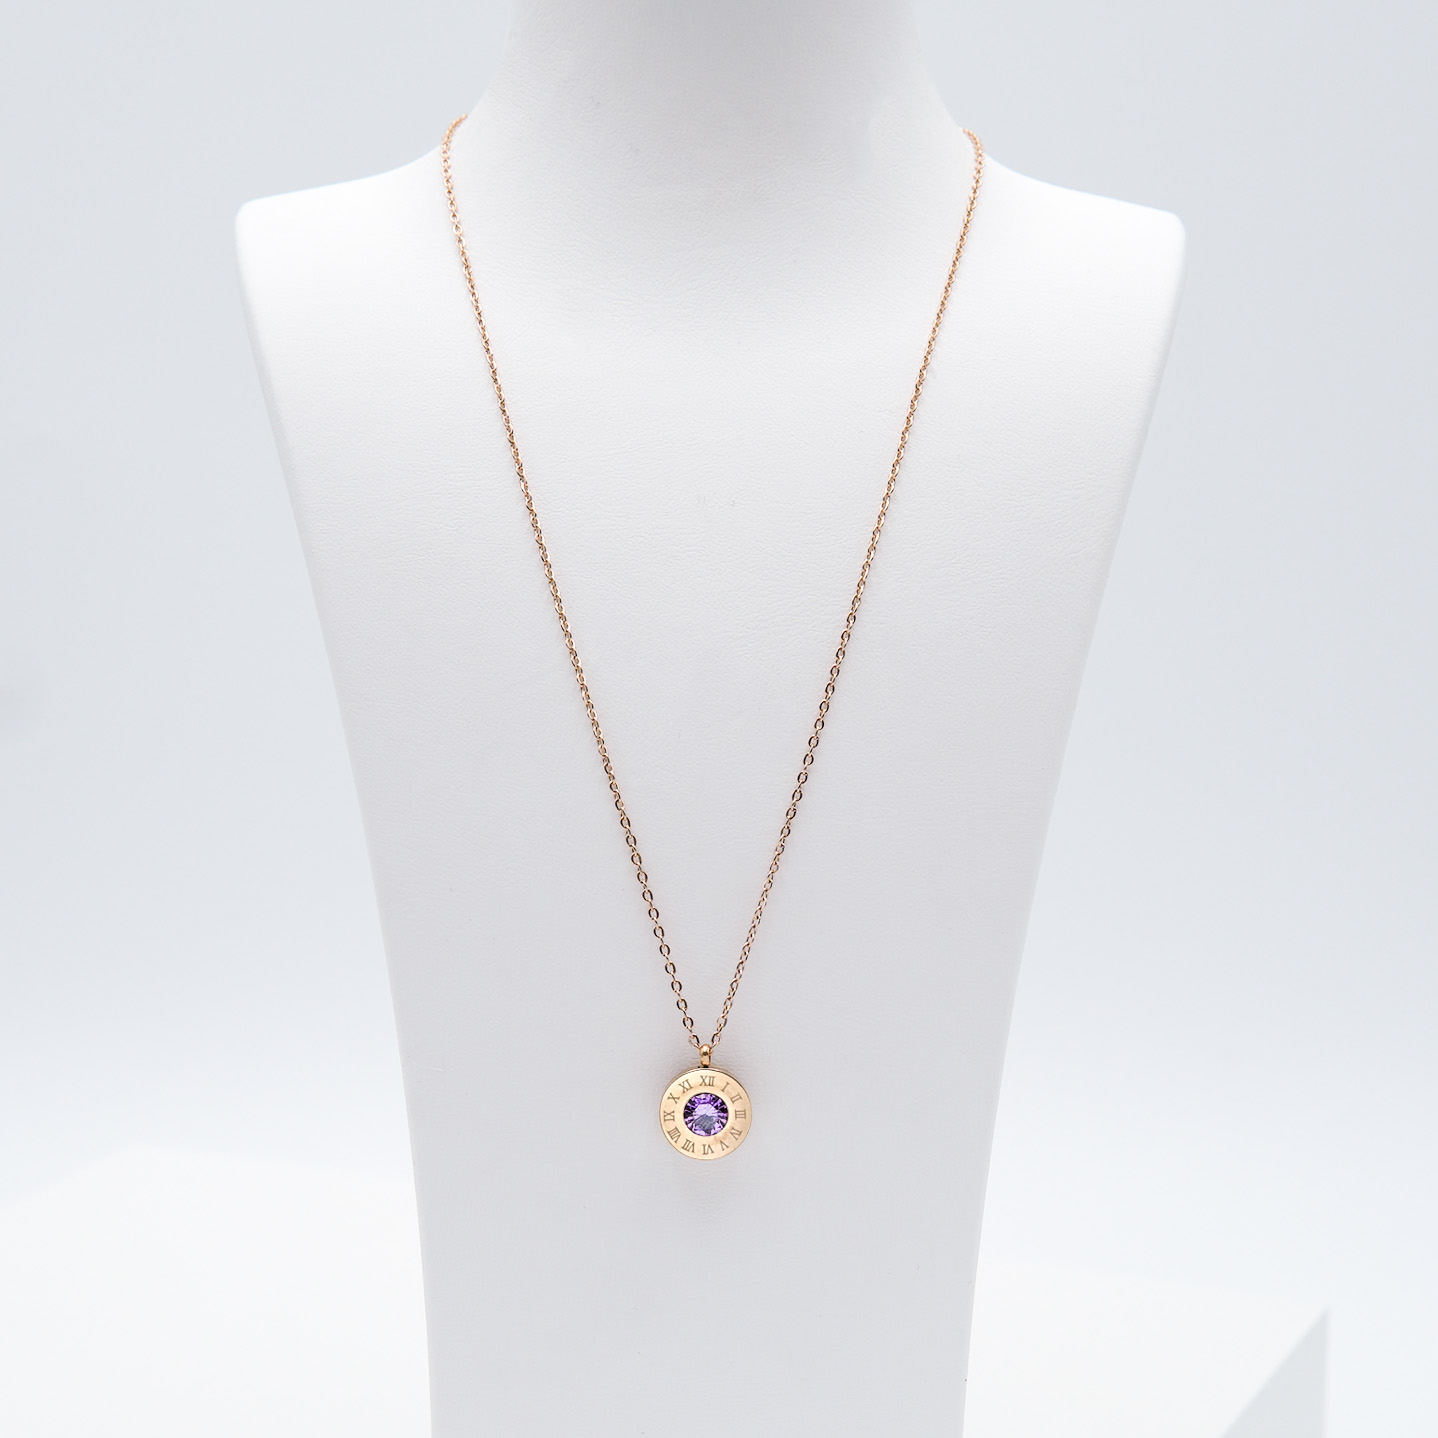 3- 4 Queen Diamonds Necklace Rose Edition Halsband Modern and trendy Necklace and women jewelry and accessories from SWEVALI fashion Sweden